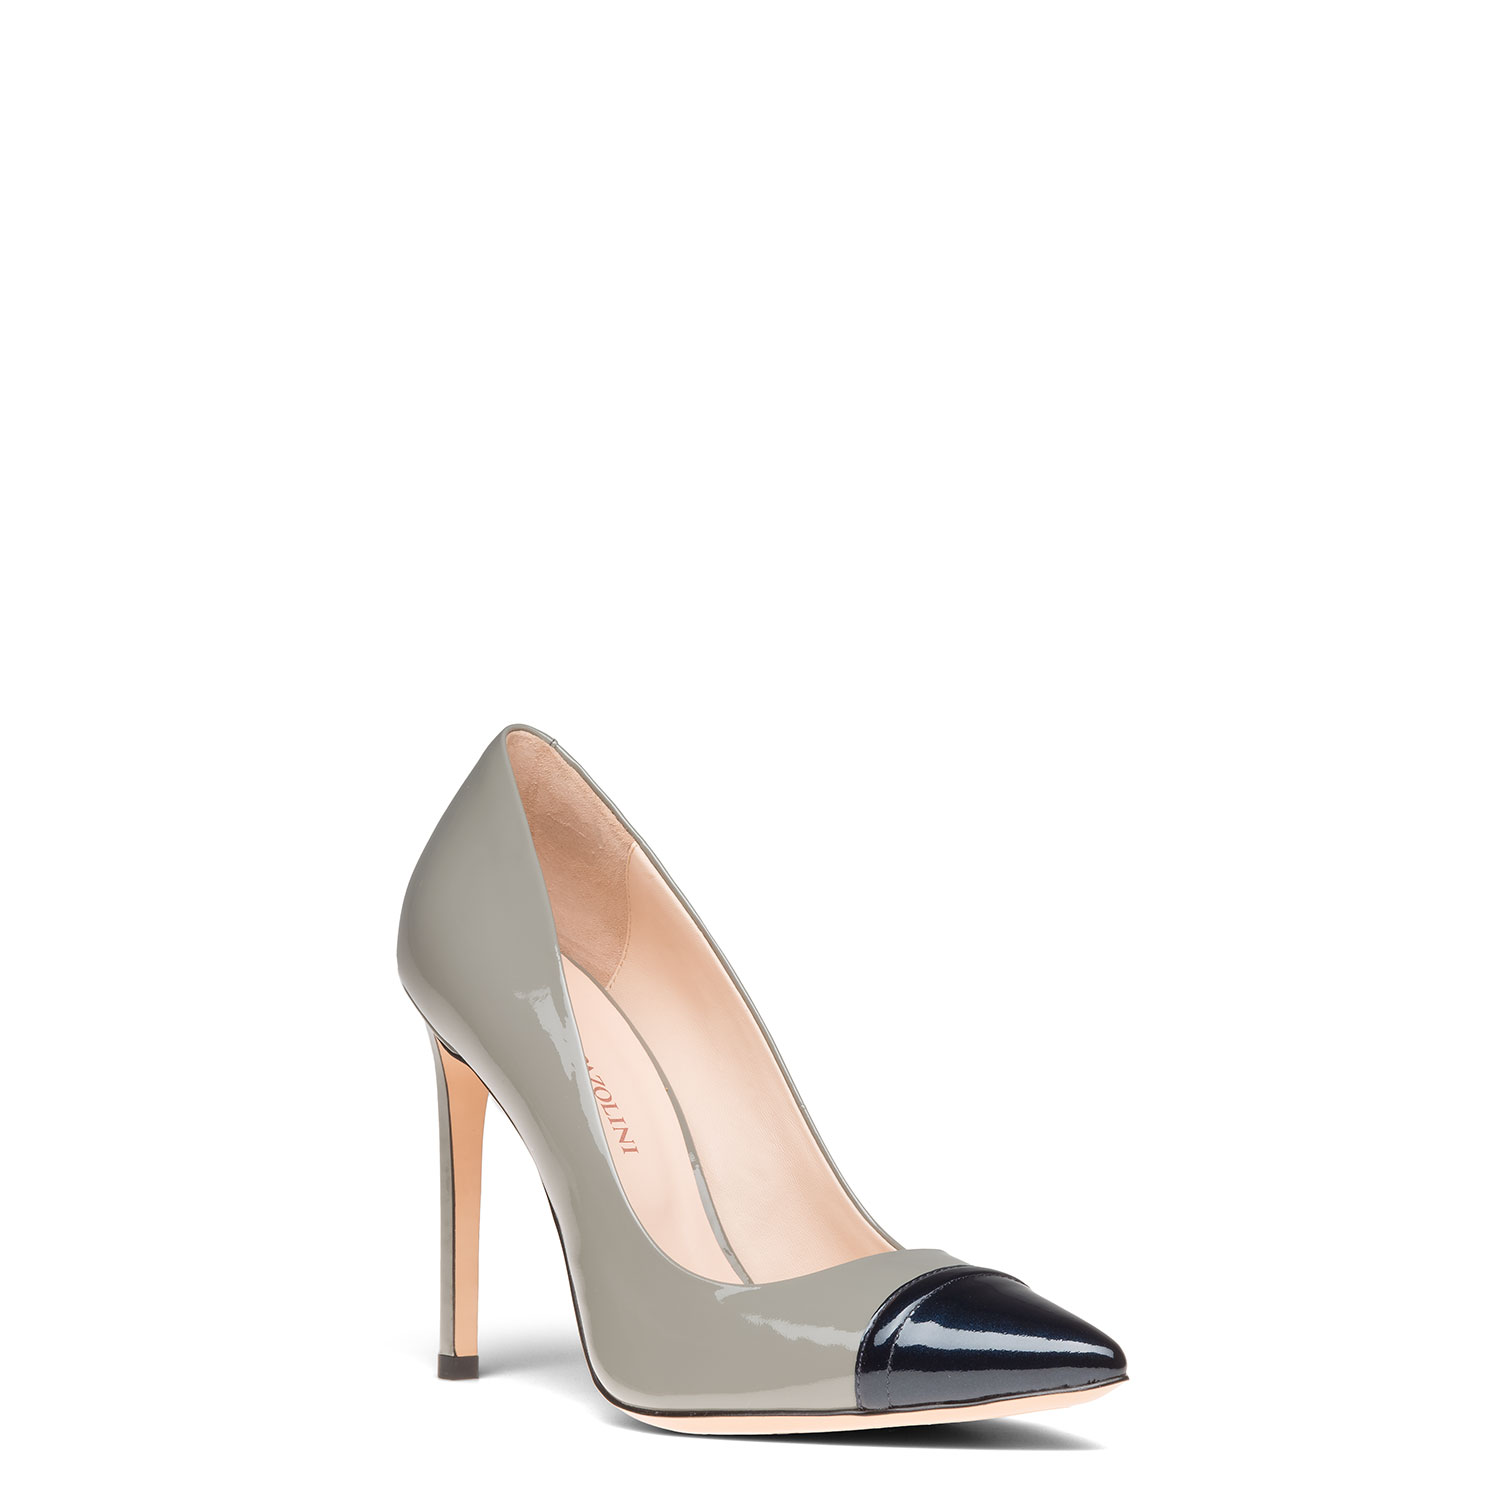 Women's shoes CARLO PAZOLINI FL-ALV7-20